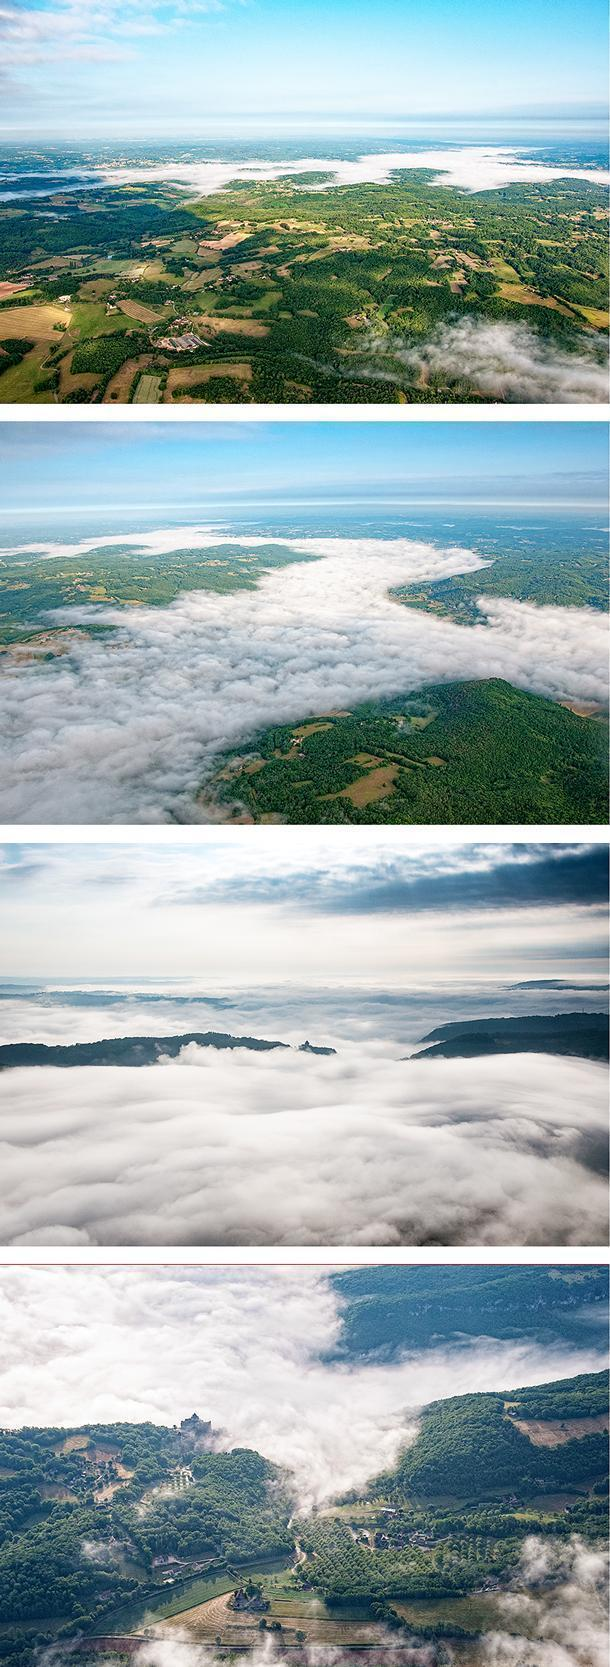 We see the Dordogne River shrouded by the clouds